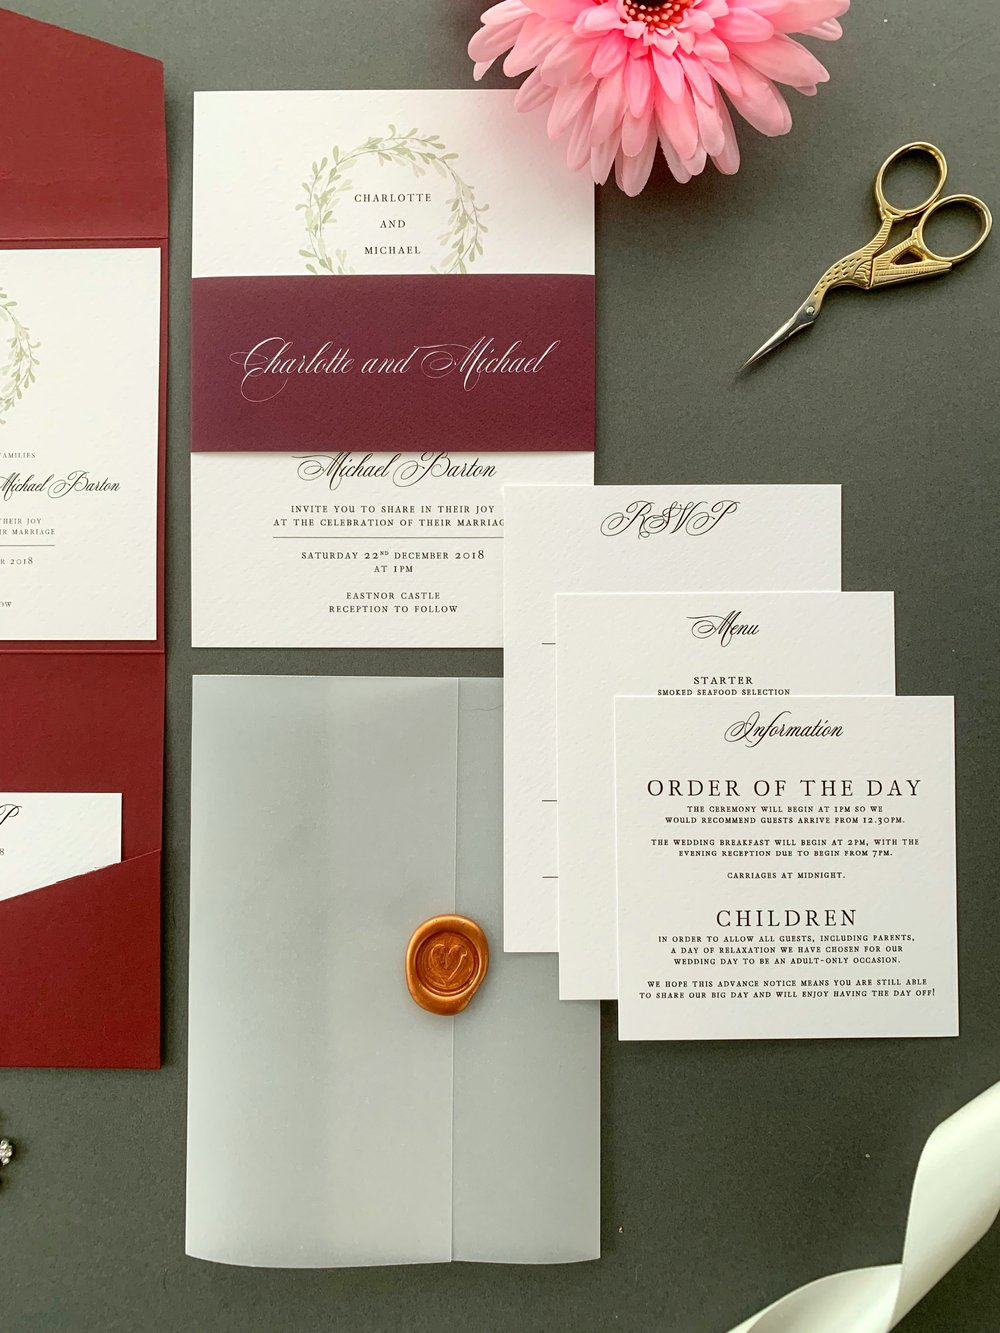 Oxford Invitation Suite in Jet Black with Paper Belly Band in Wine Berry, with Copper Wax Seal on Vellum Jacket